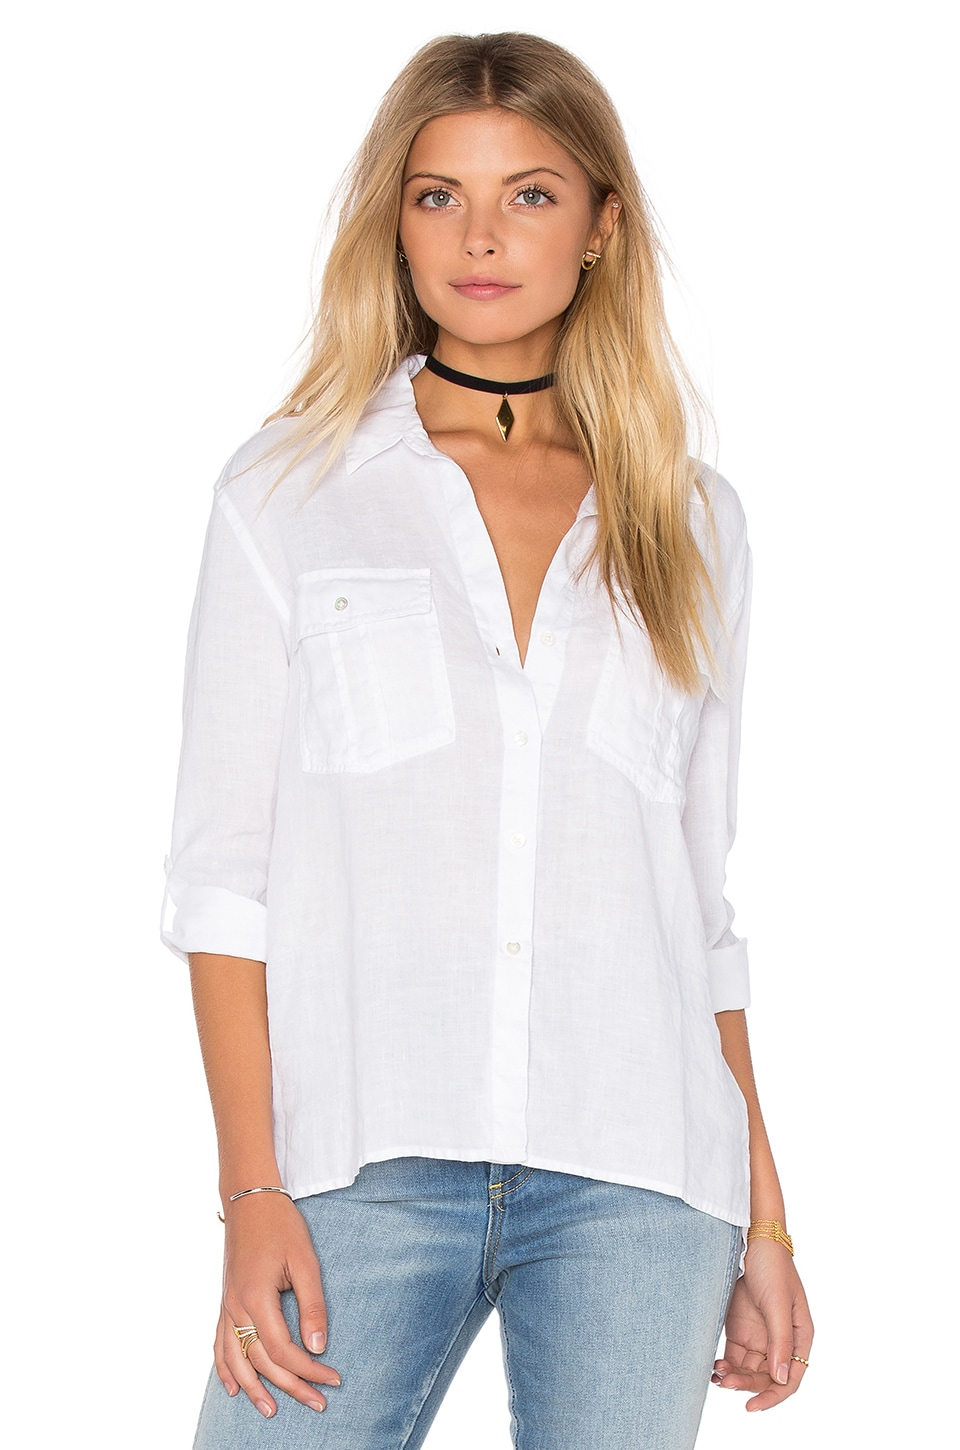 James Perse Pocket Button Up Top in White